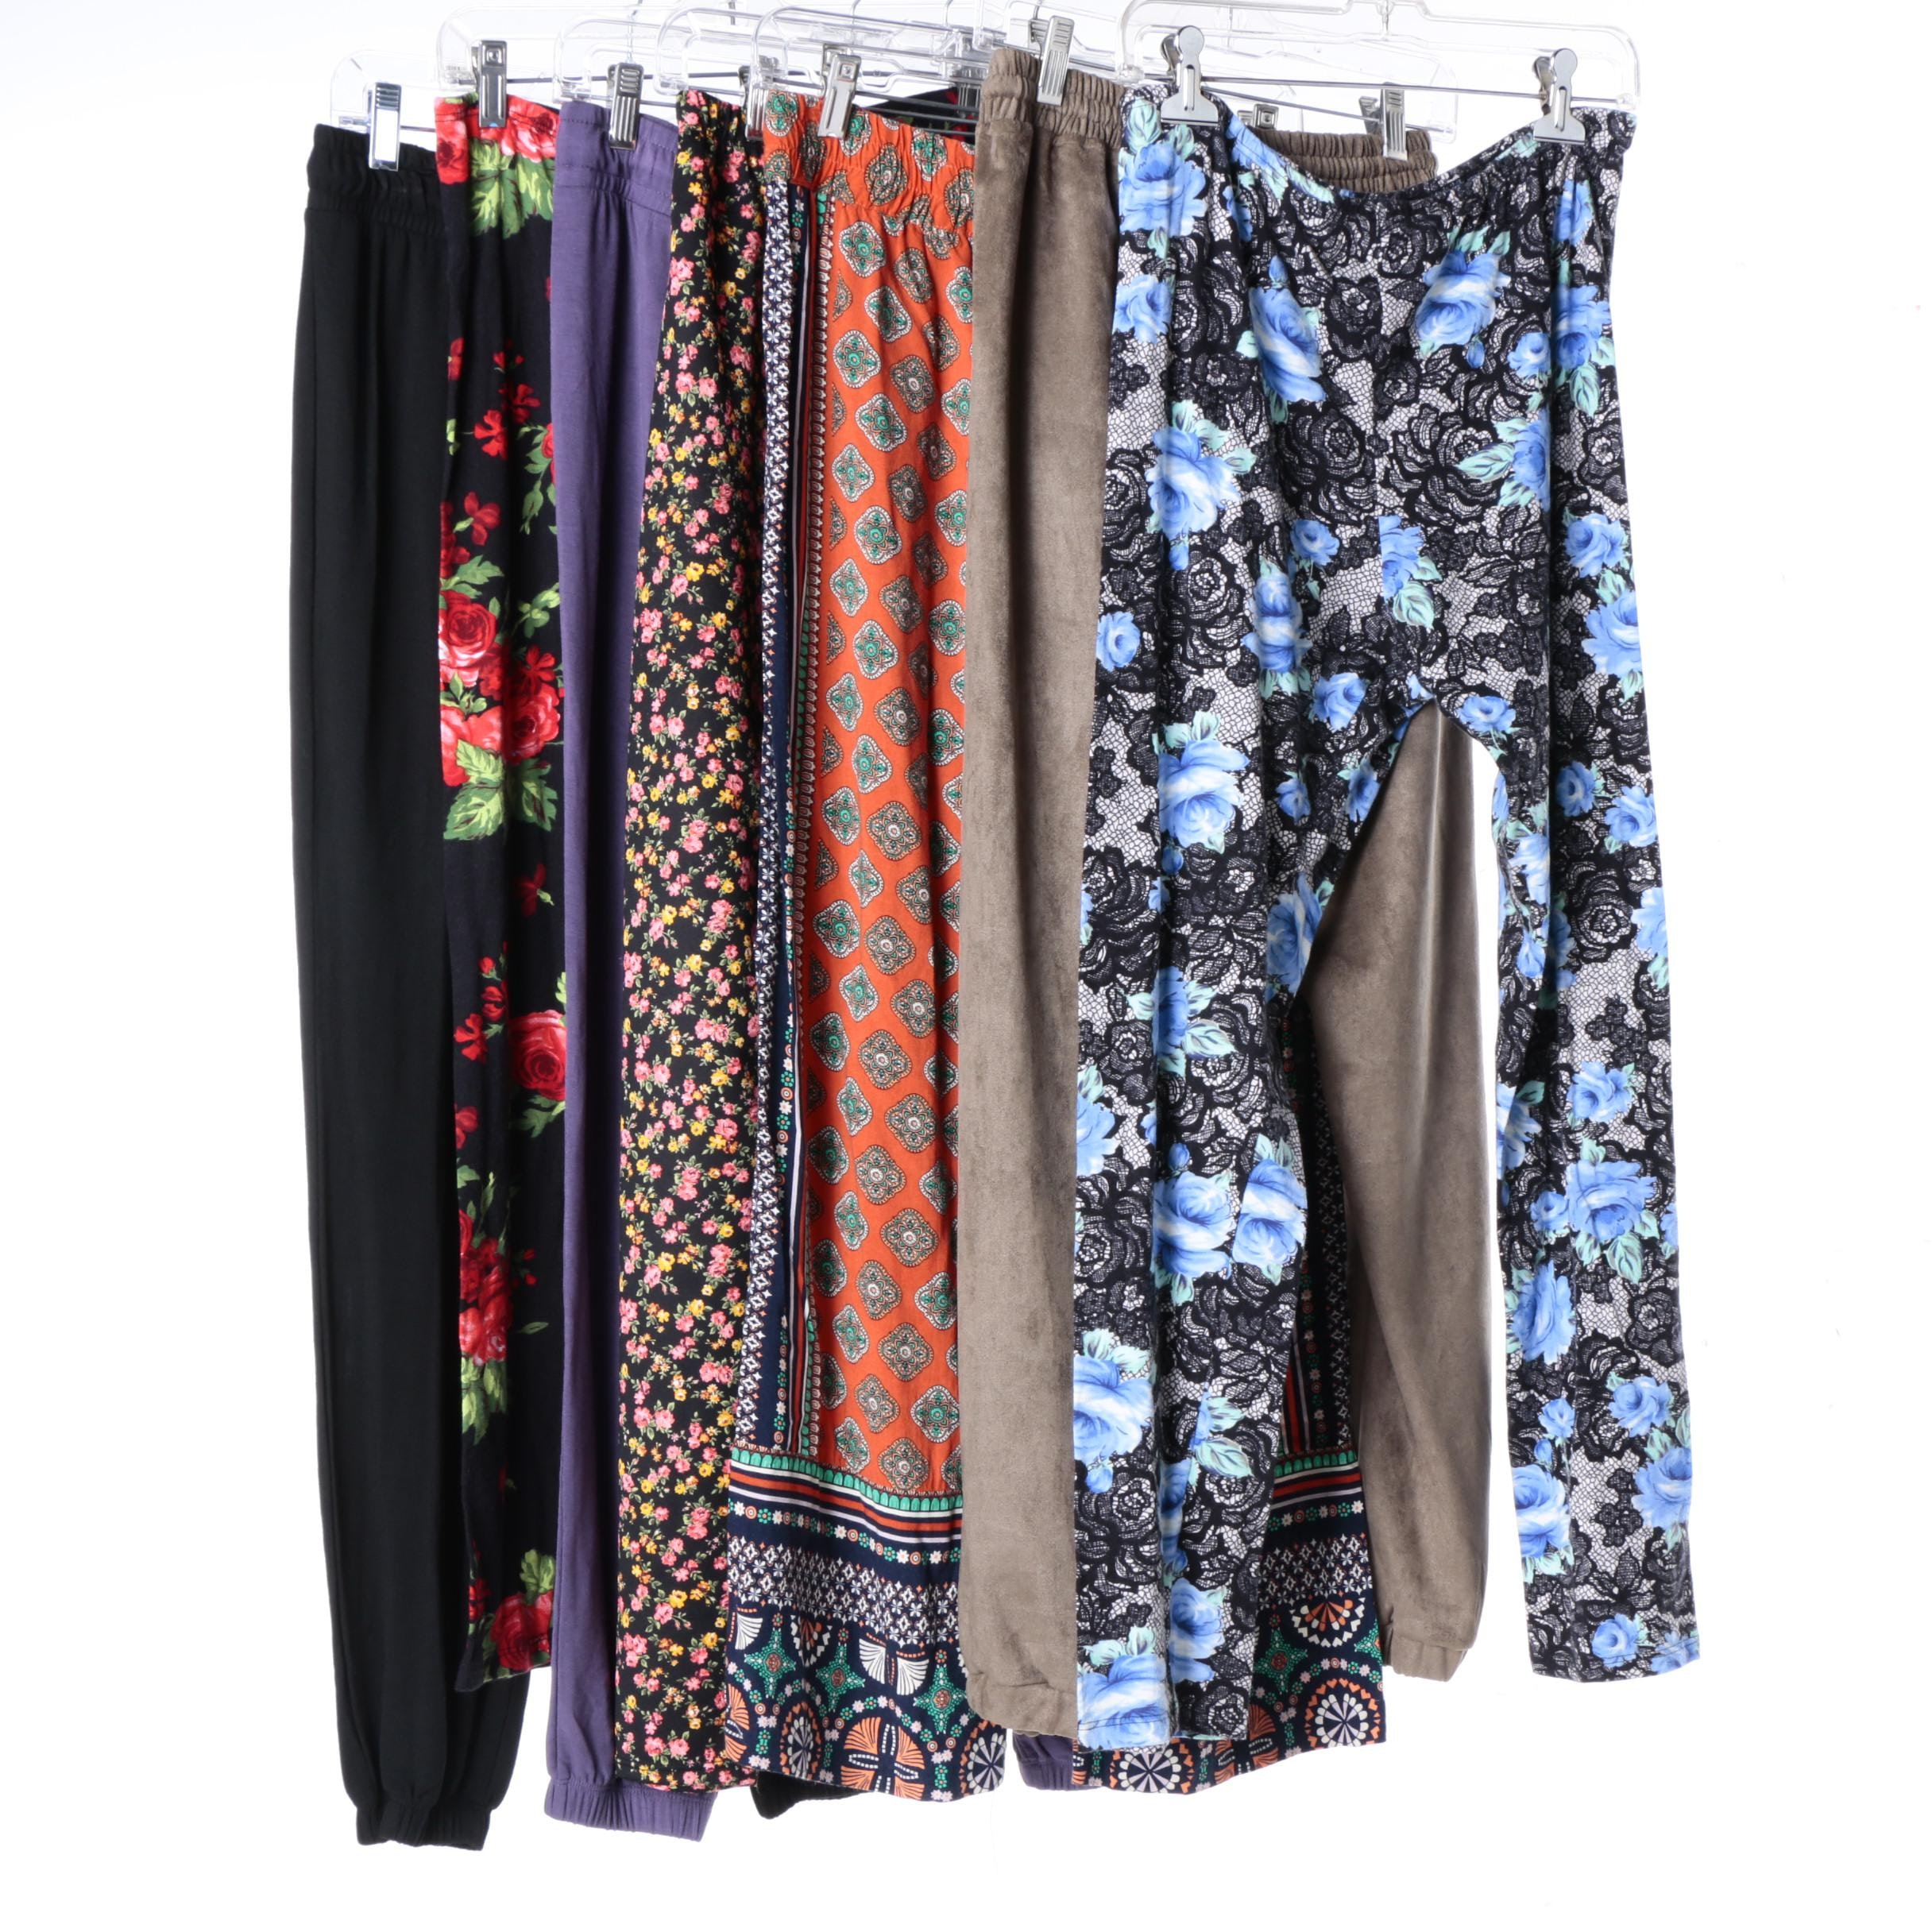 Women's Relaxed and Sleepwear Casual Pants